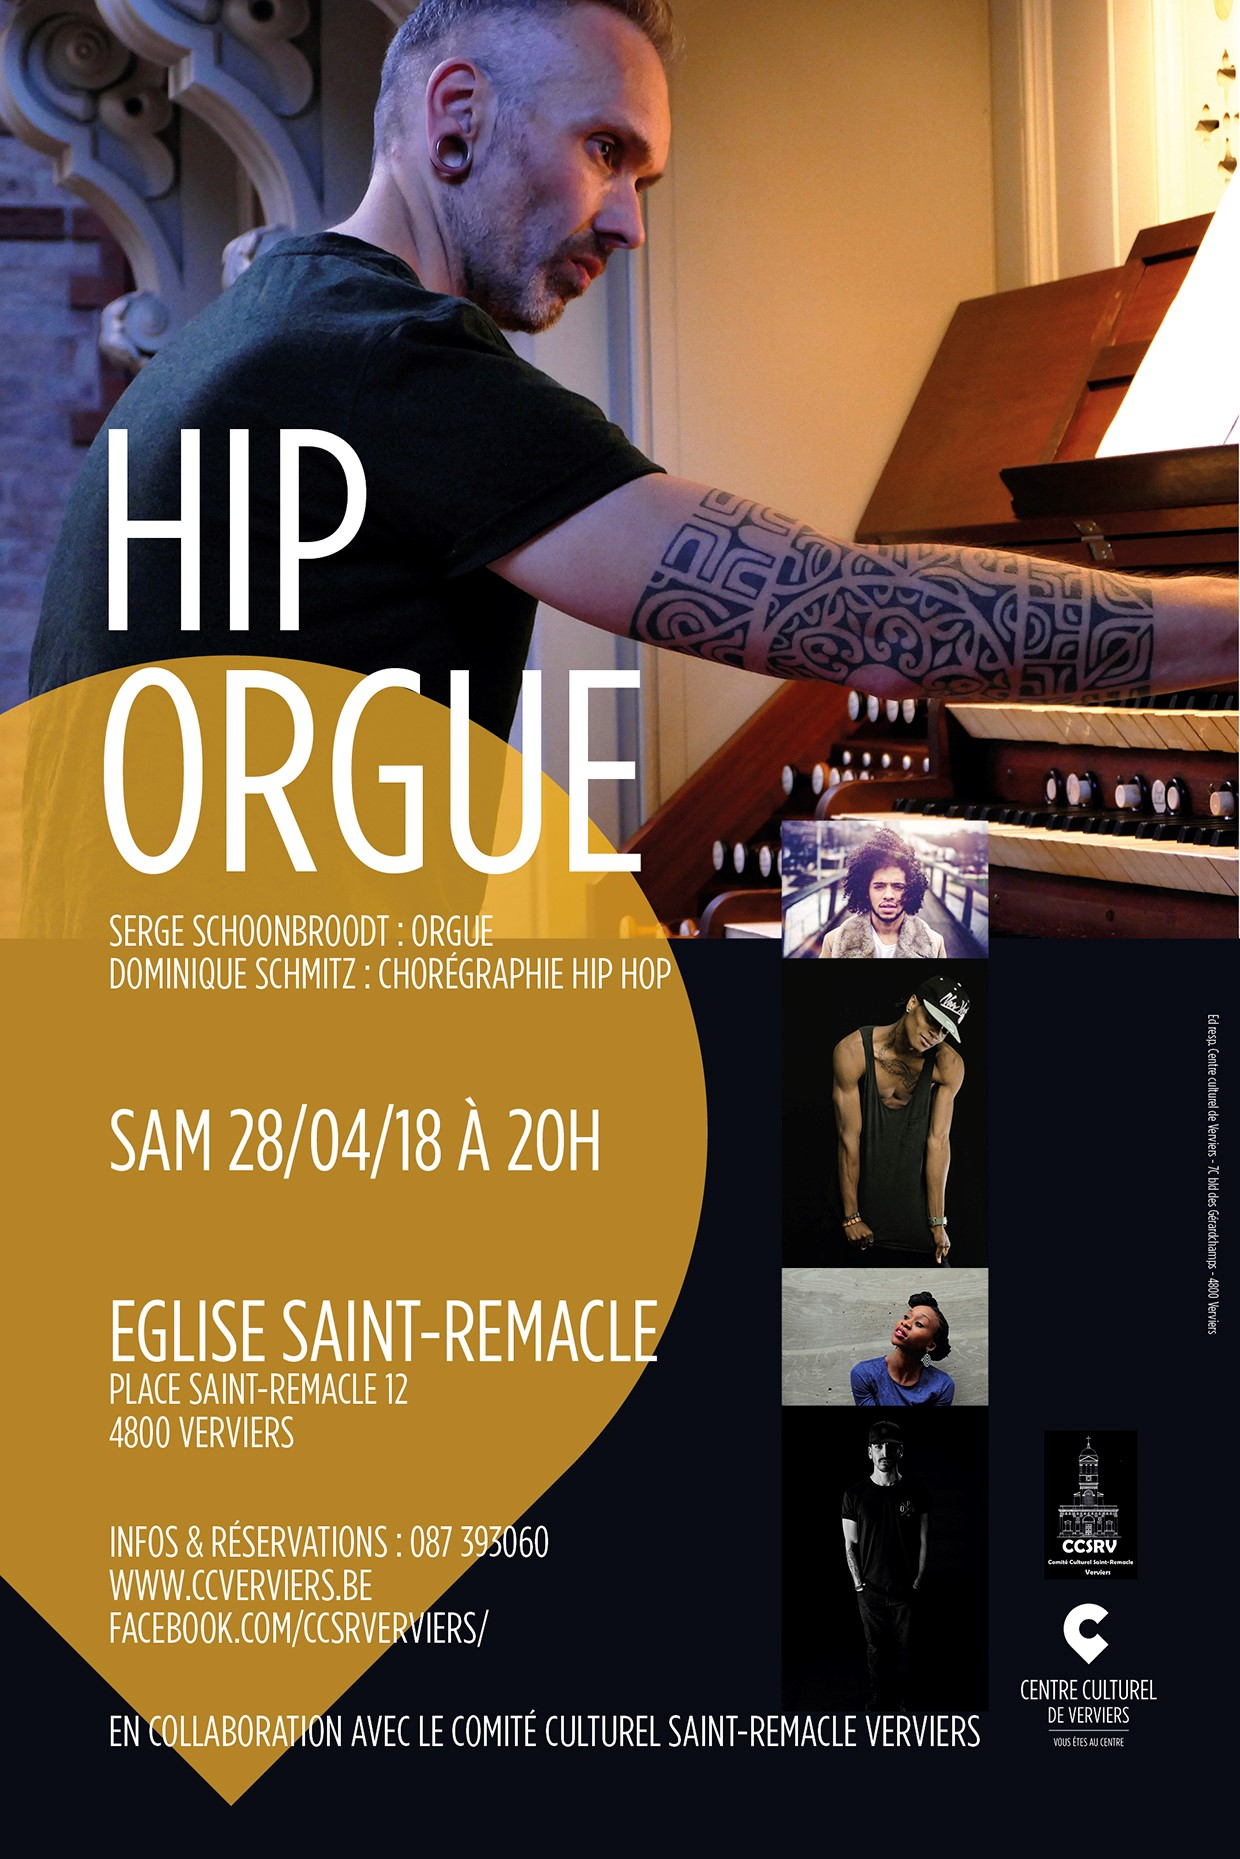 « Hiporgue », danse hip-hop et orgue @ Eglise Saint Remacle | Verviers | Wallonie | Belgique